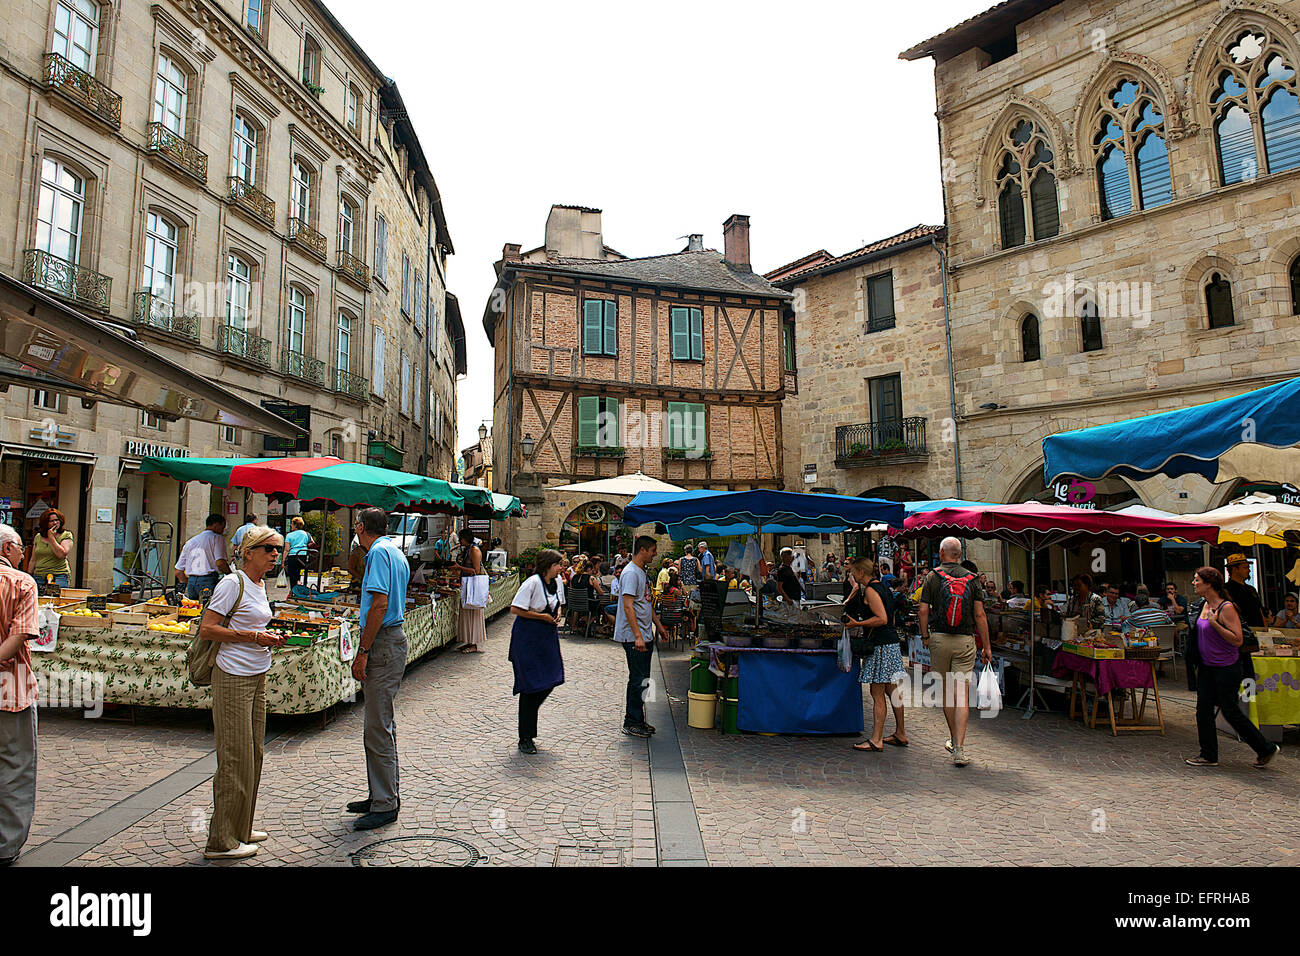 Location Figeac Market In Figeac France Stock Photo 78579827 Alamy